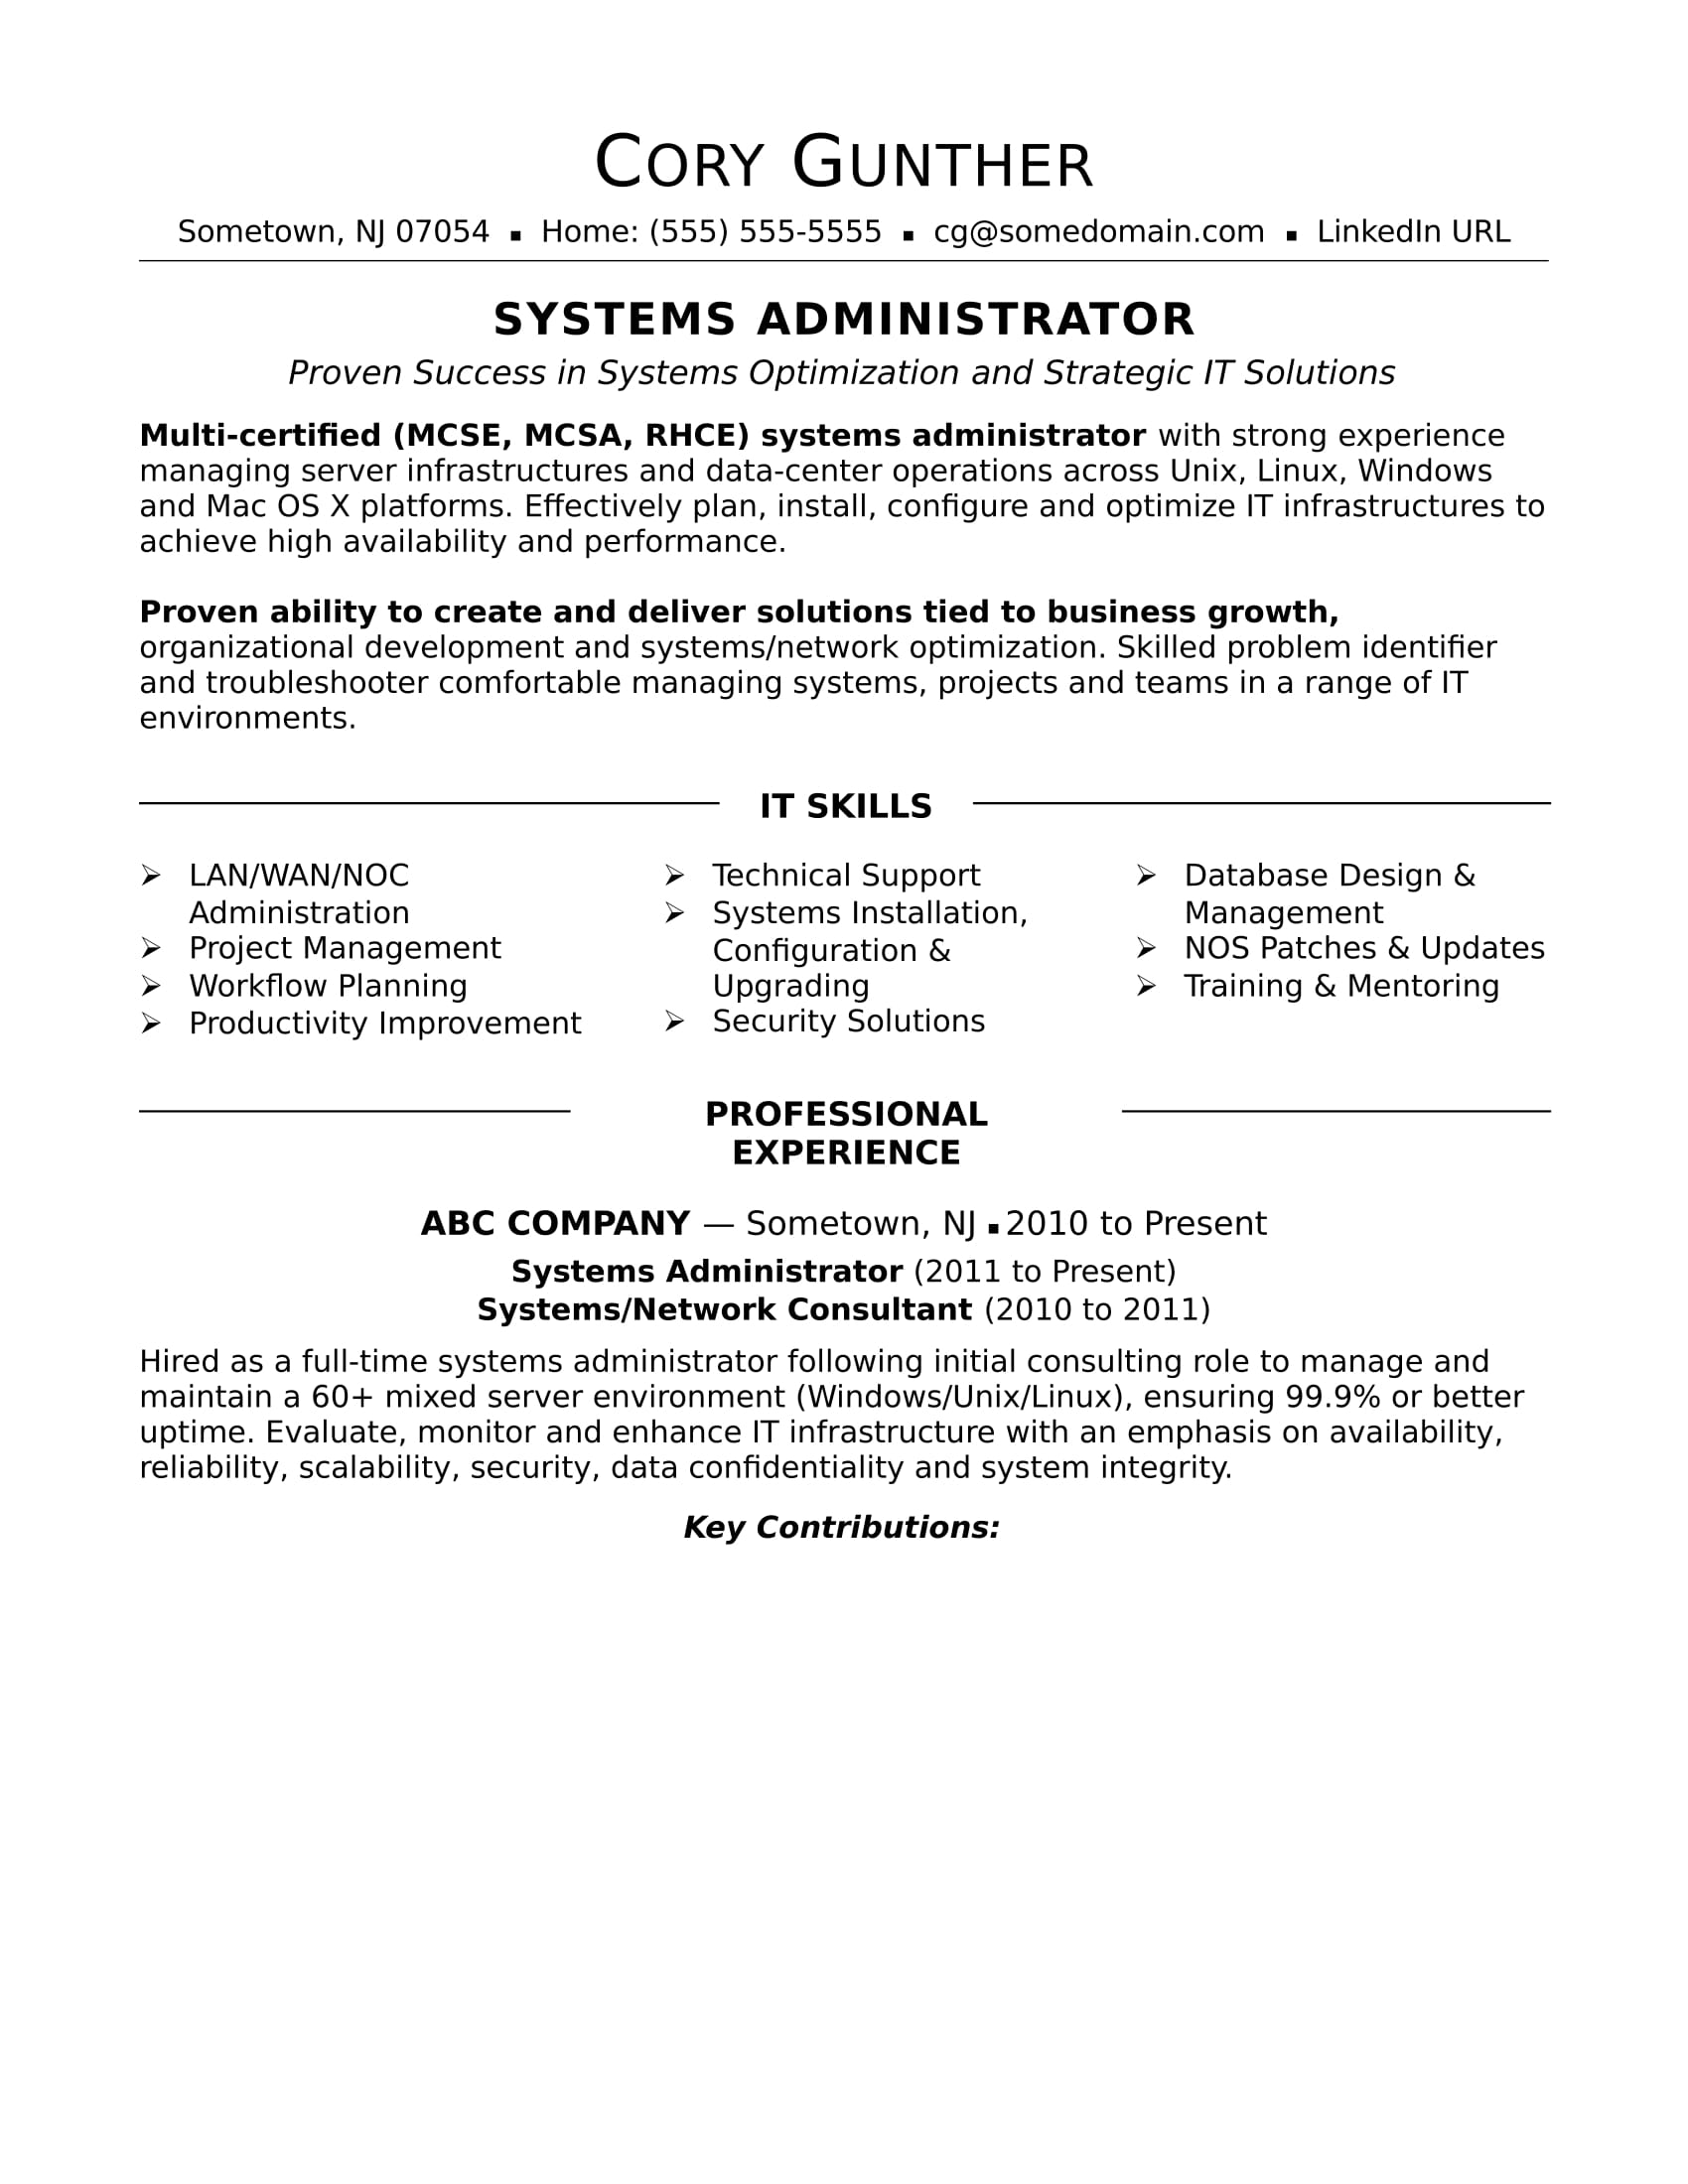 Sample Resume For An Experienced Systems Administrator  Resumes For Servers